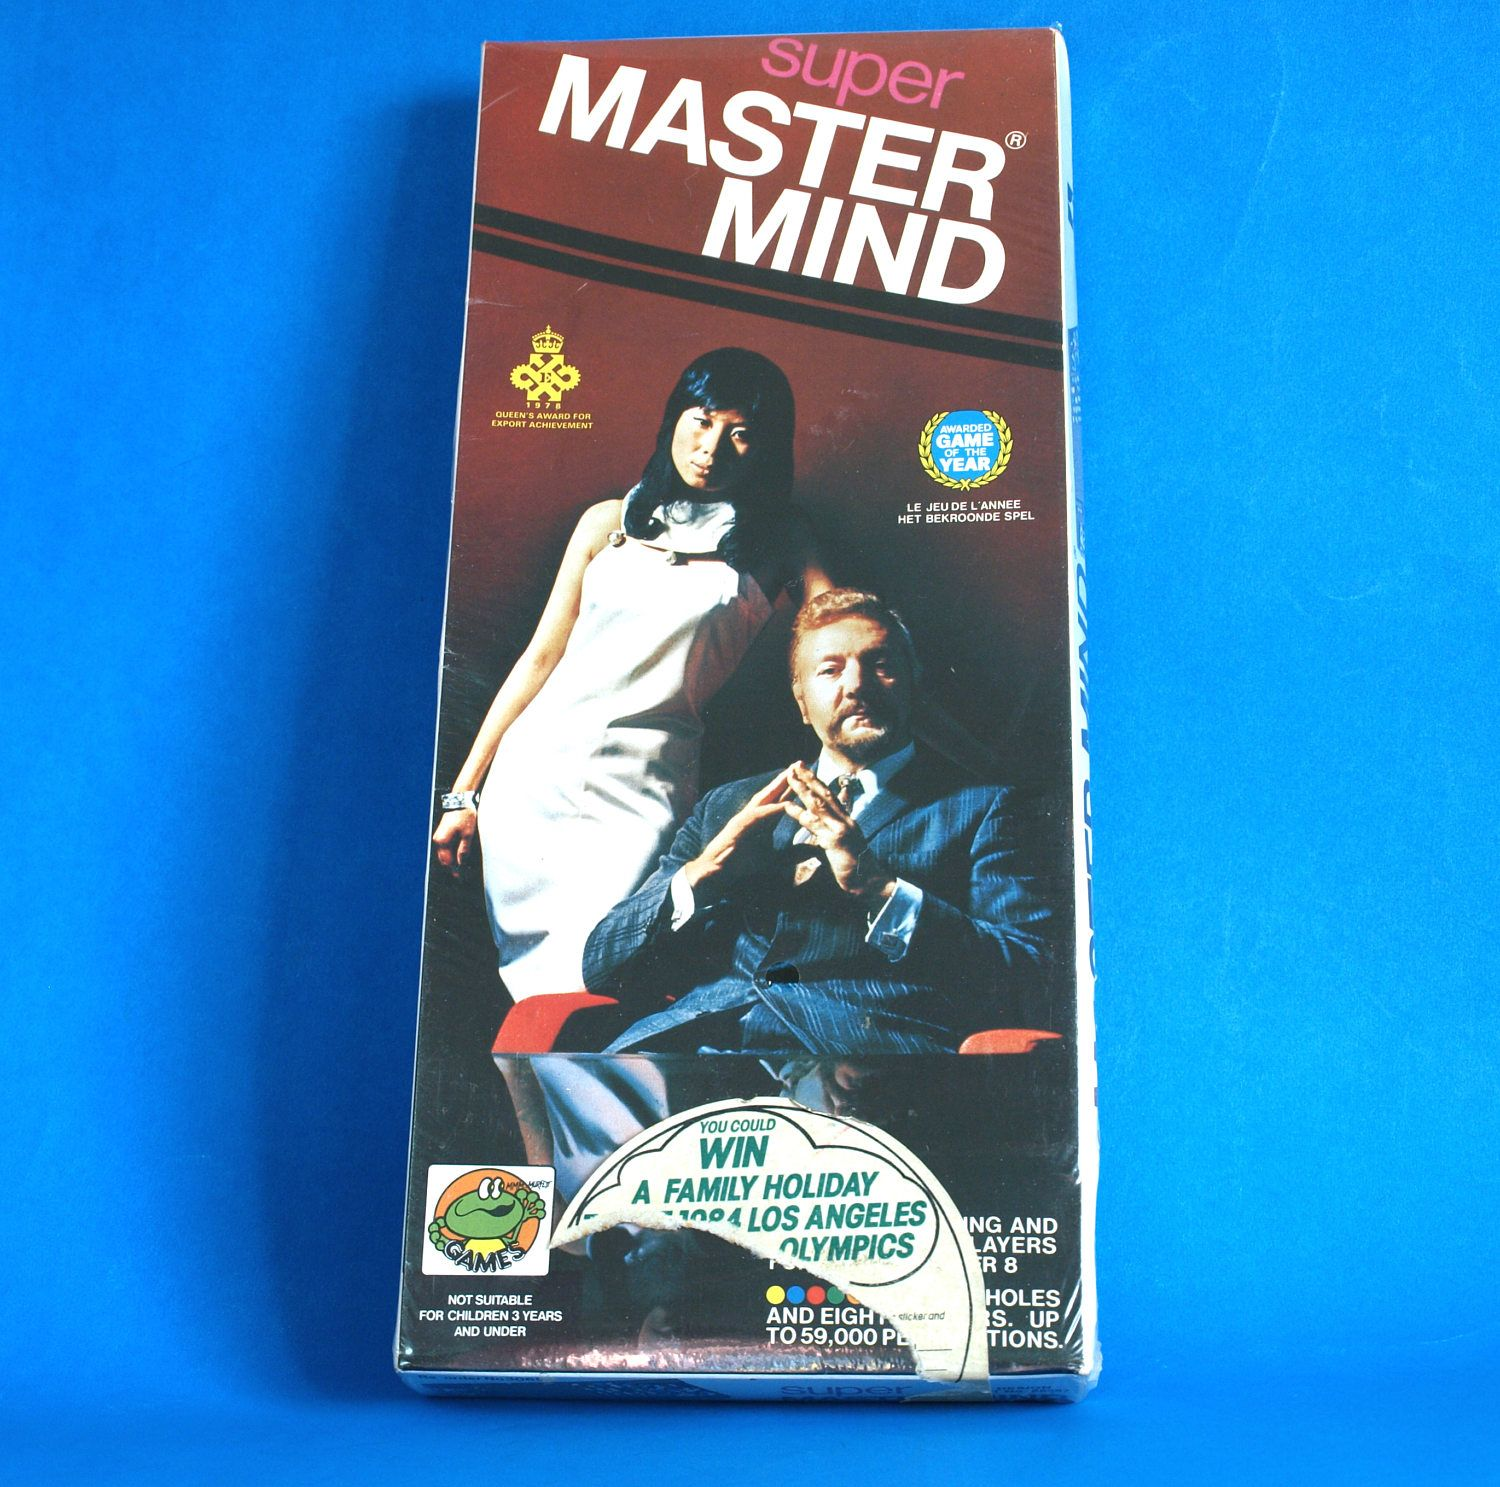 Super Mastermind Game Vintage Retro 1978 Master Mind